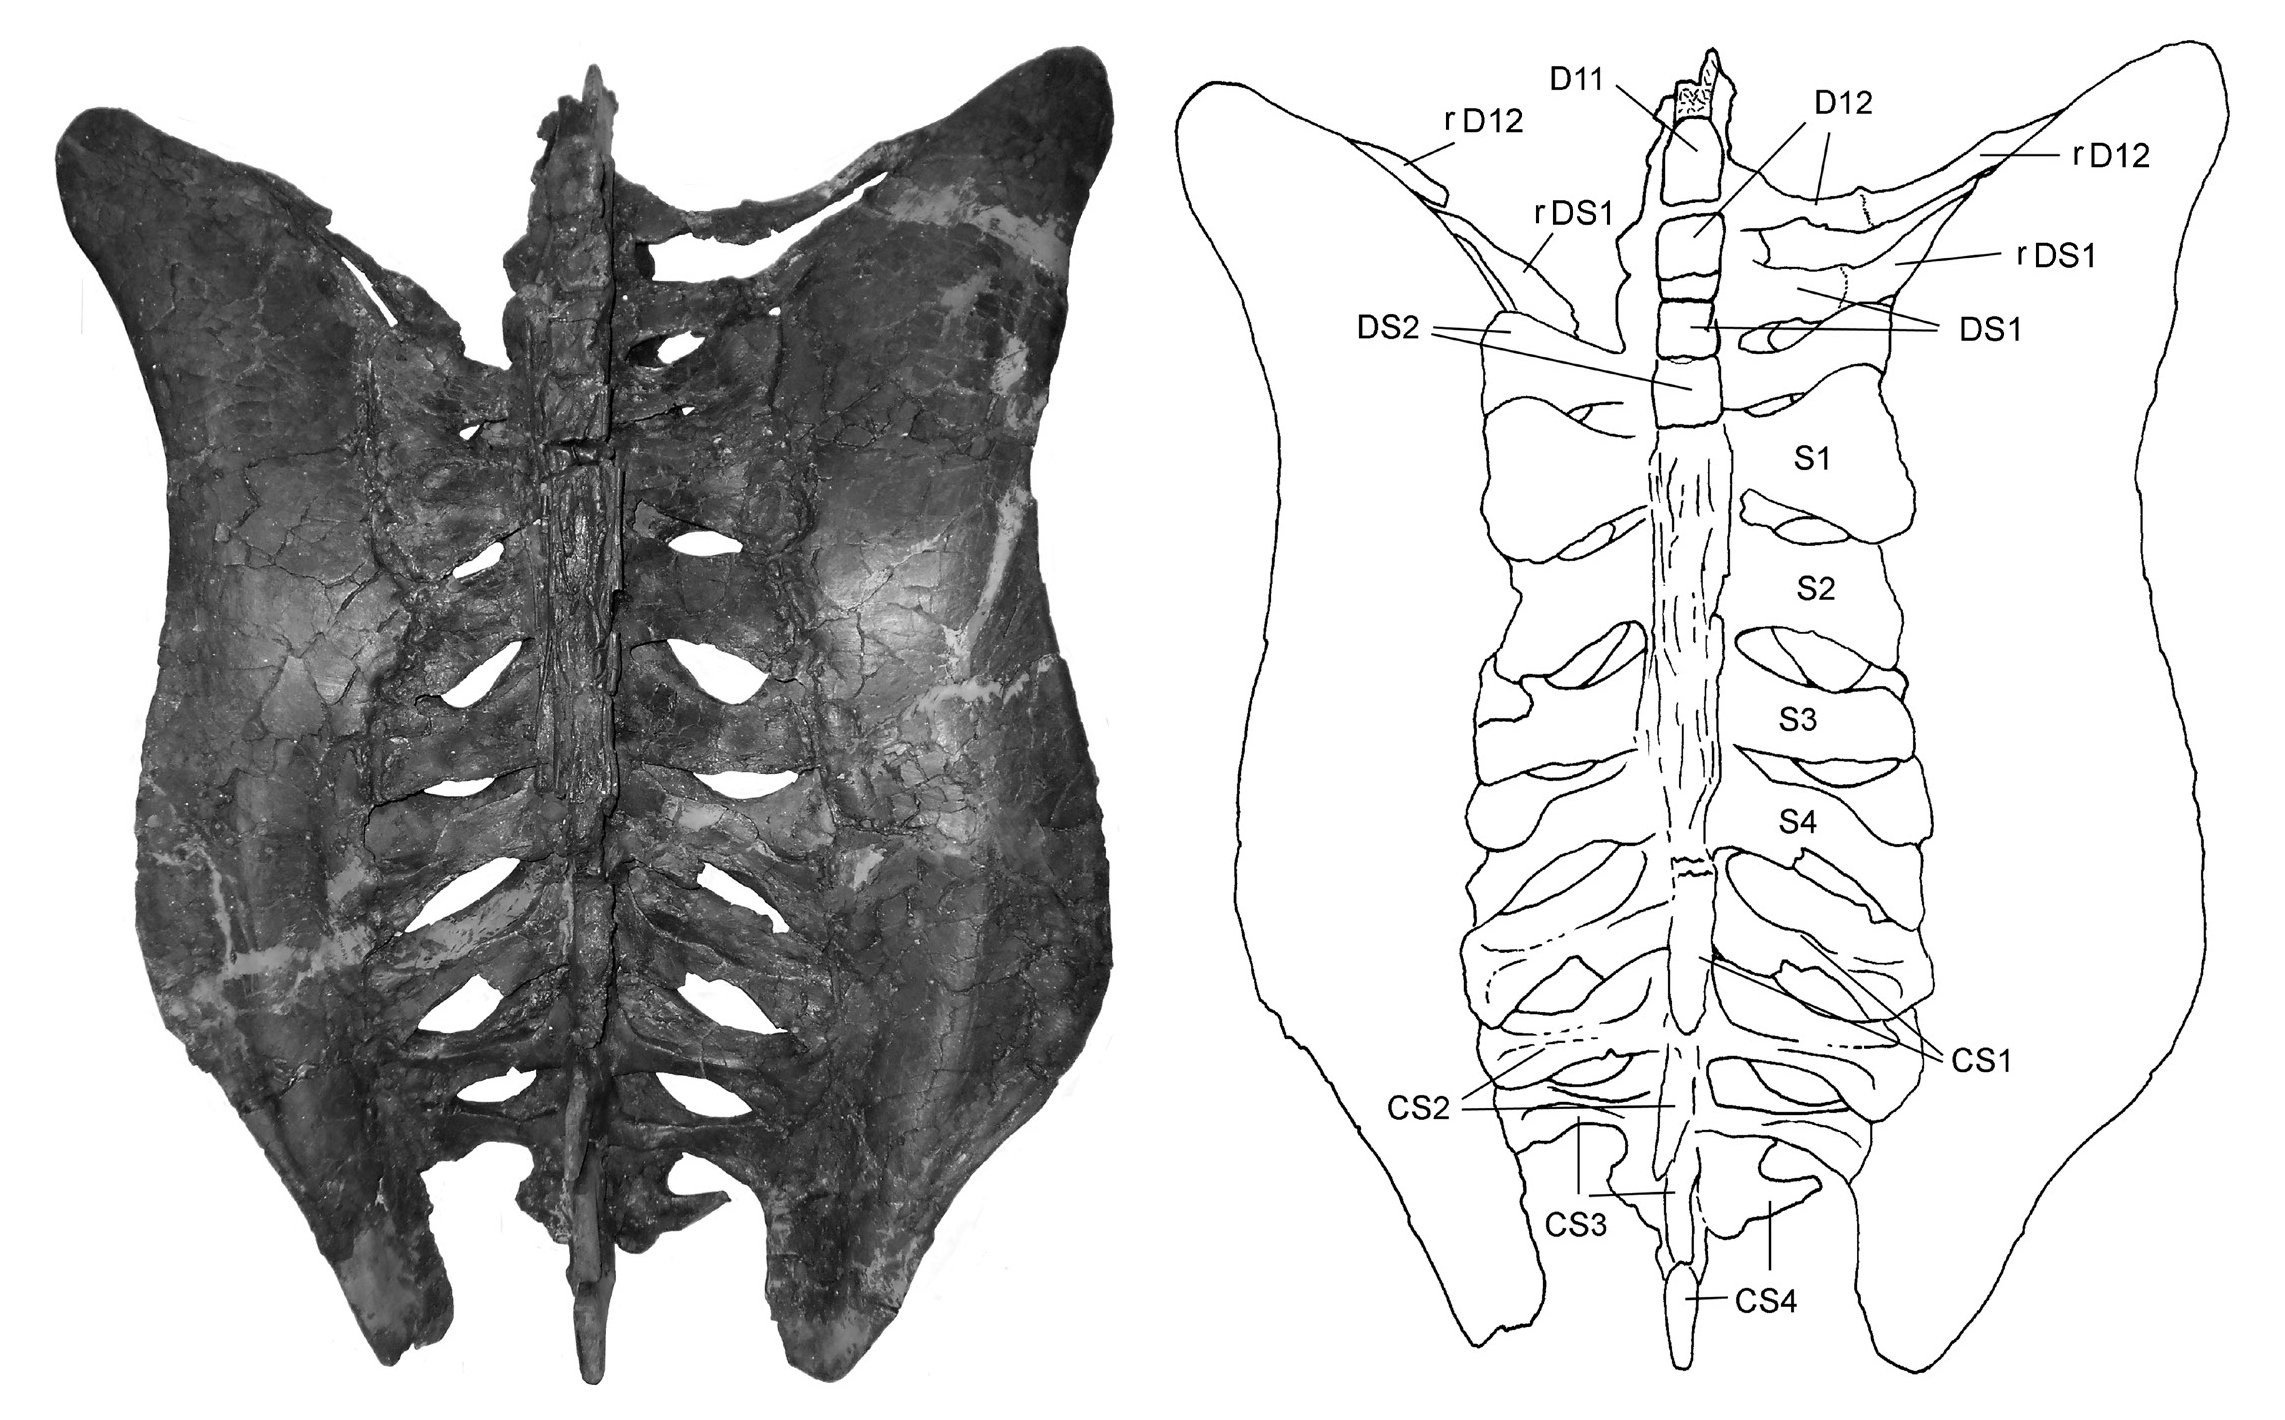 Holmes (2104:fig 12A). Synsacrum and pelvis of Chasmosaurus belli (ROM 843) in dorsal view.